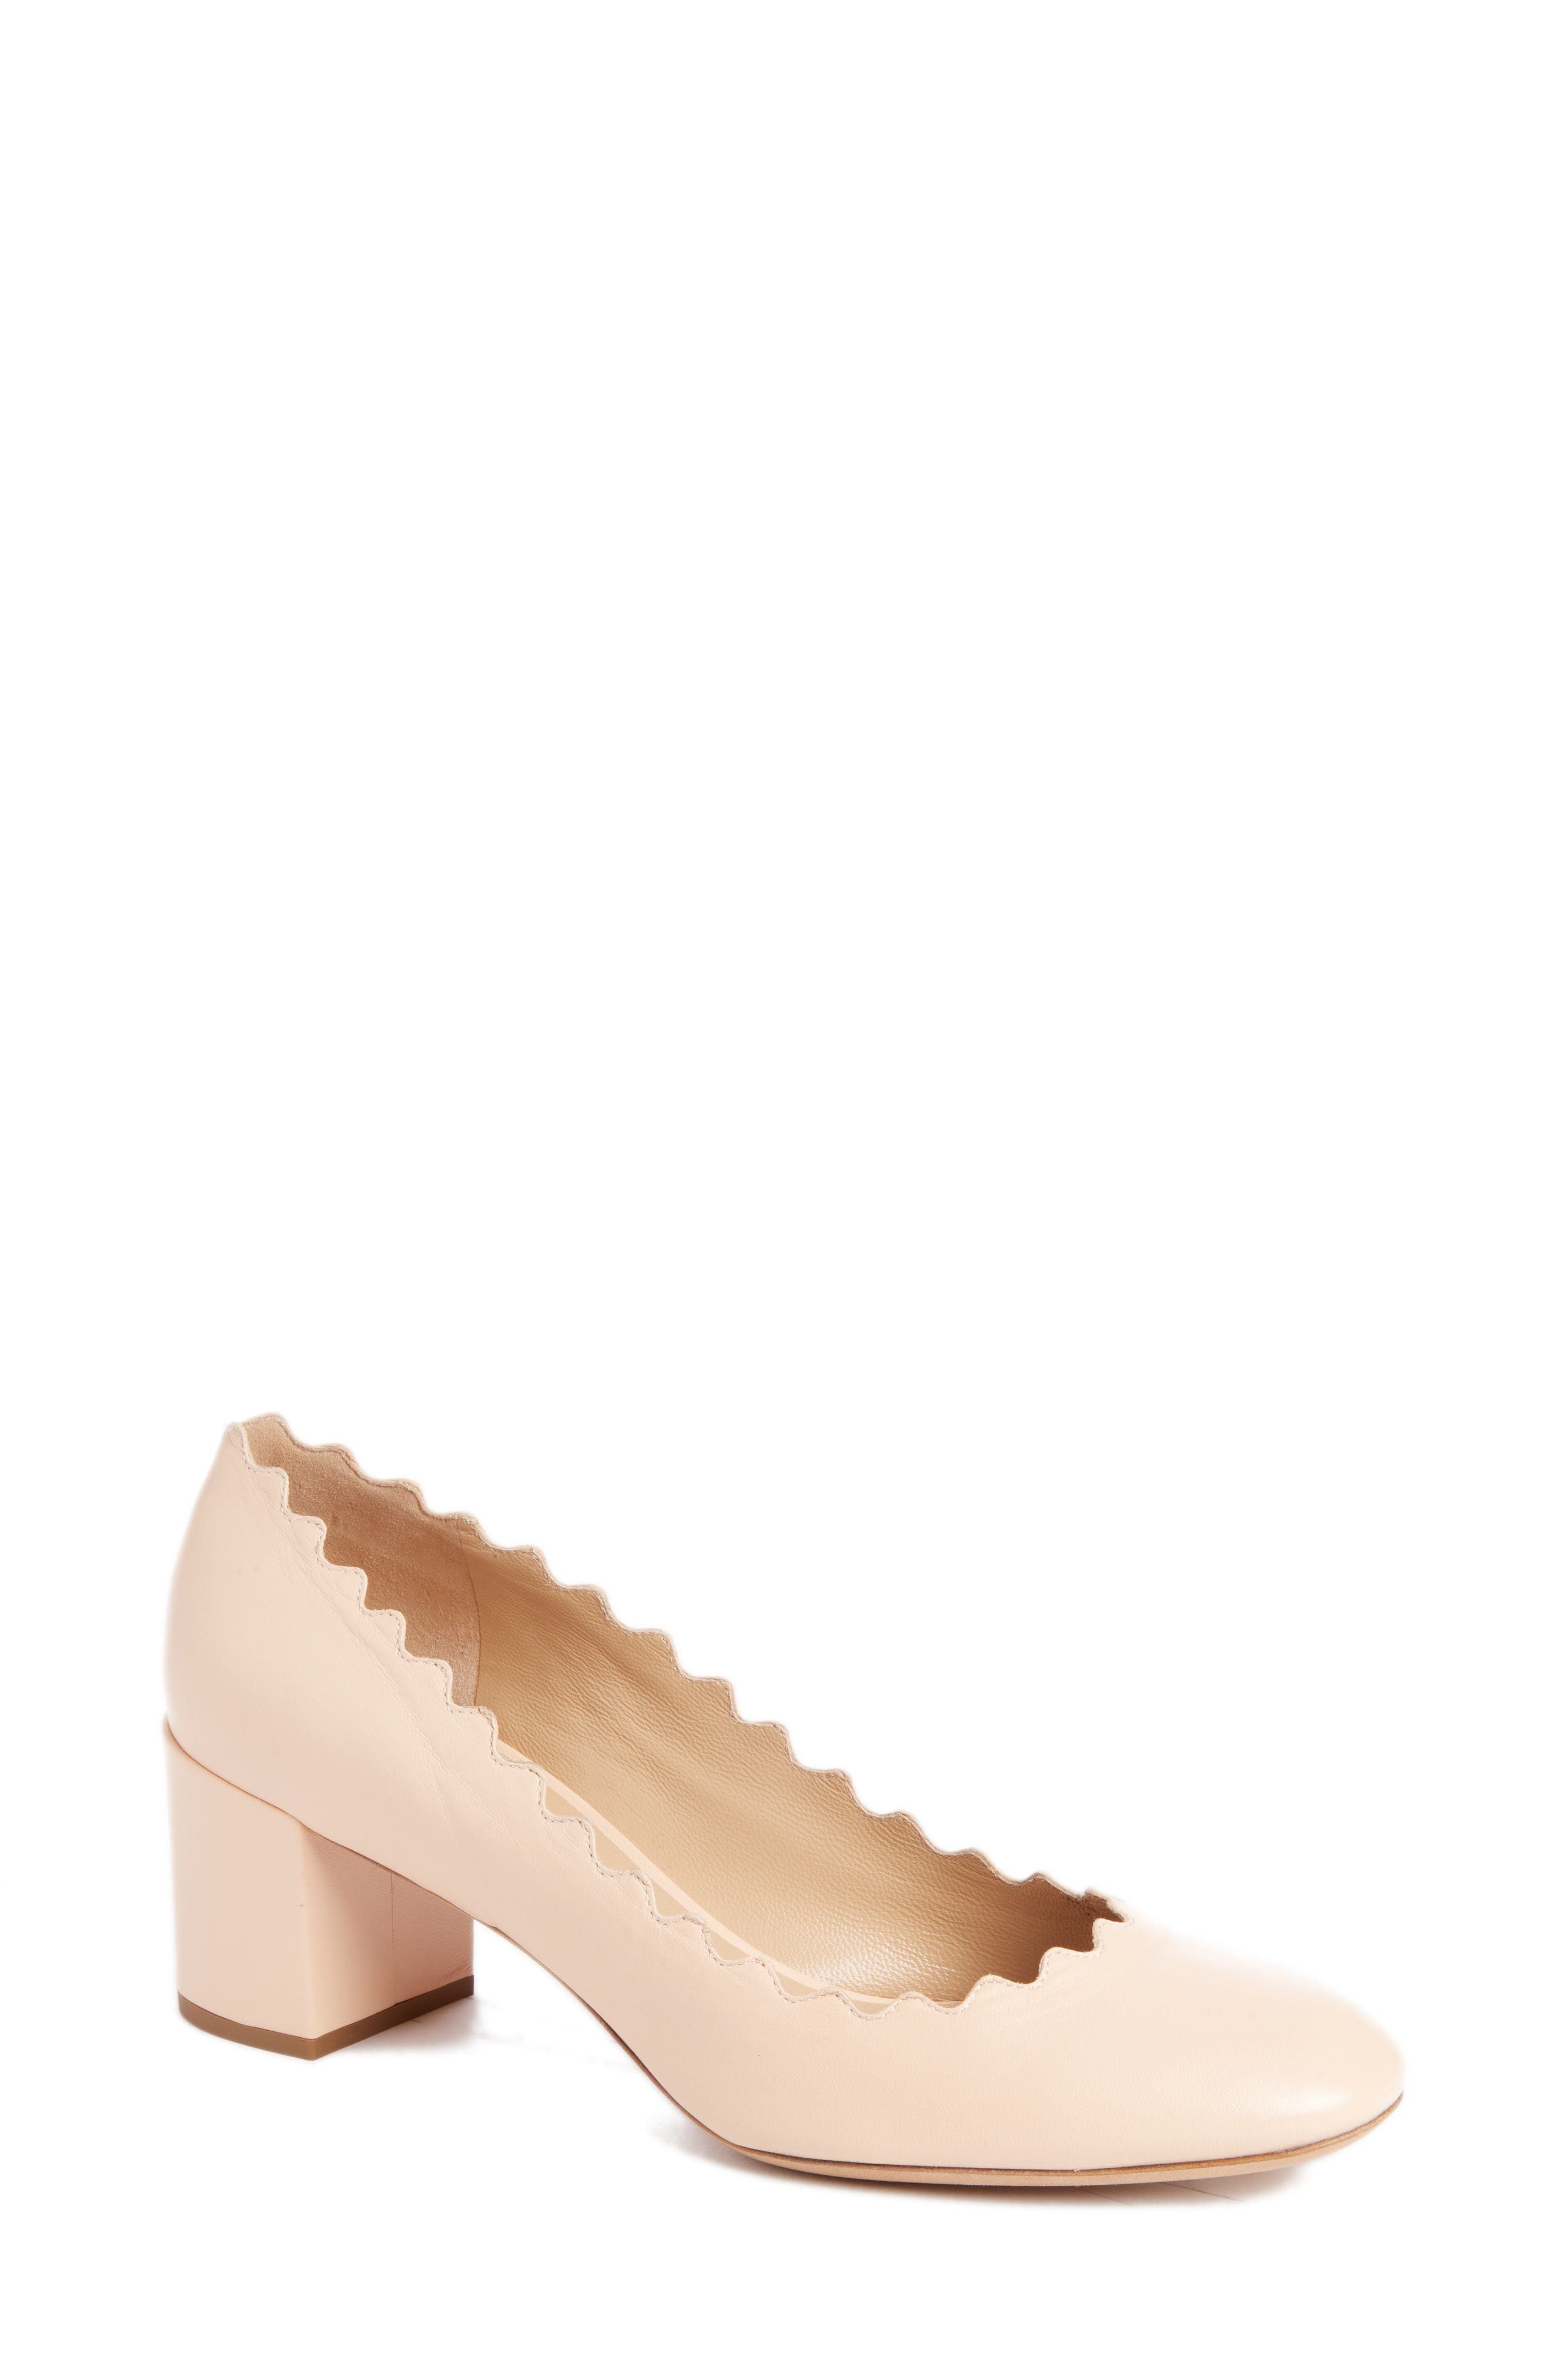 Chloe Lauren Scalloped Pump, Beige